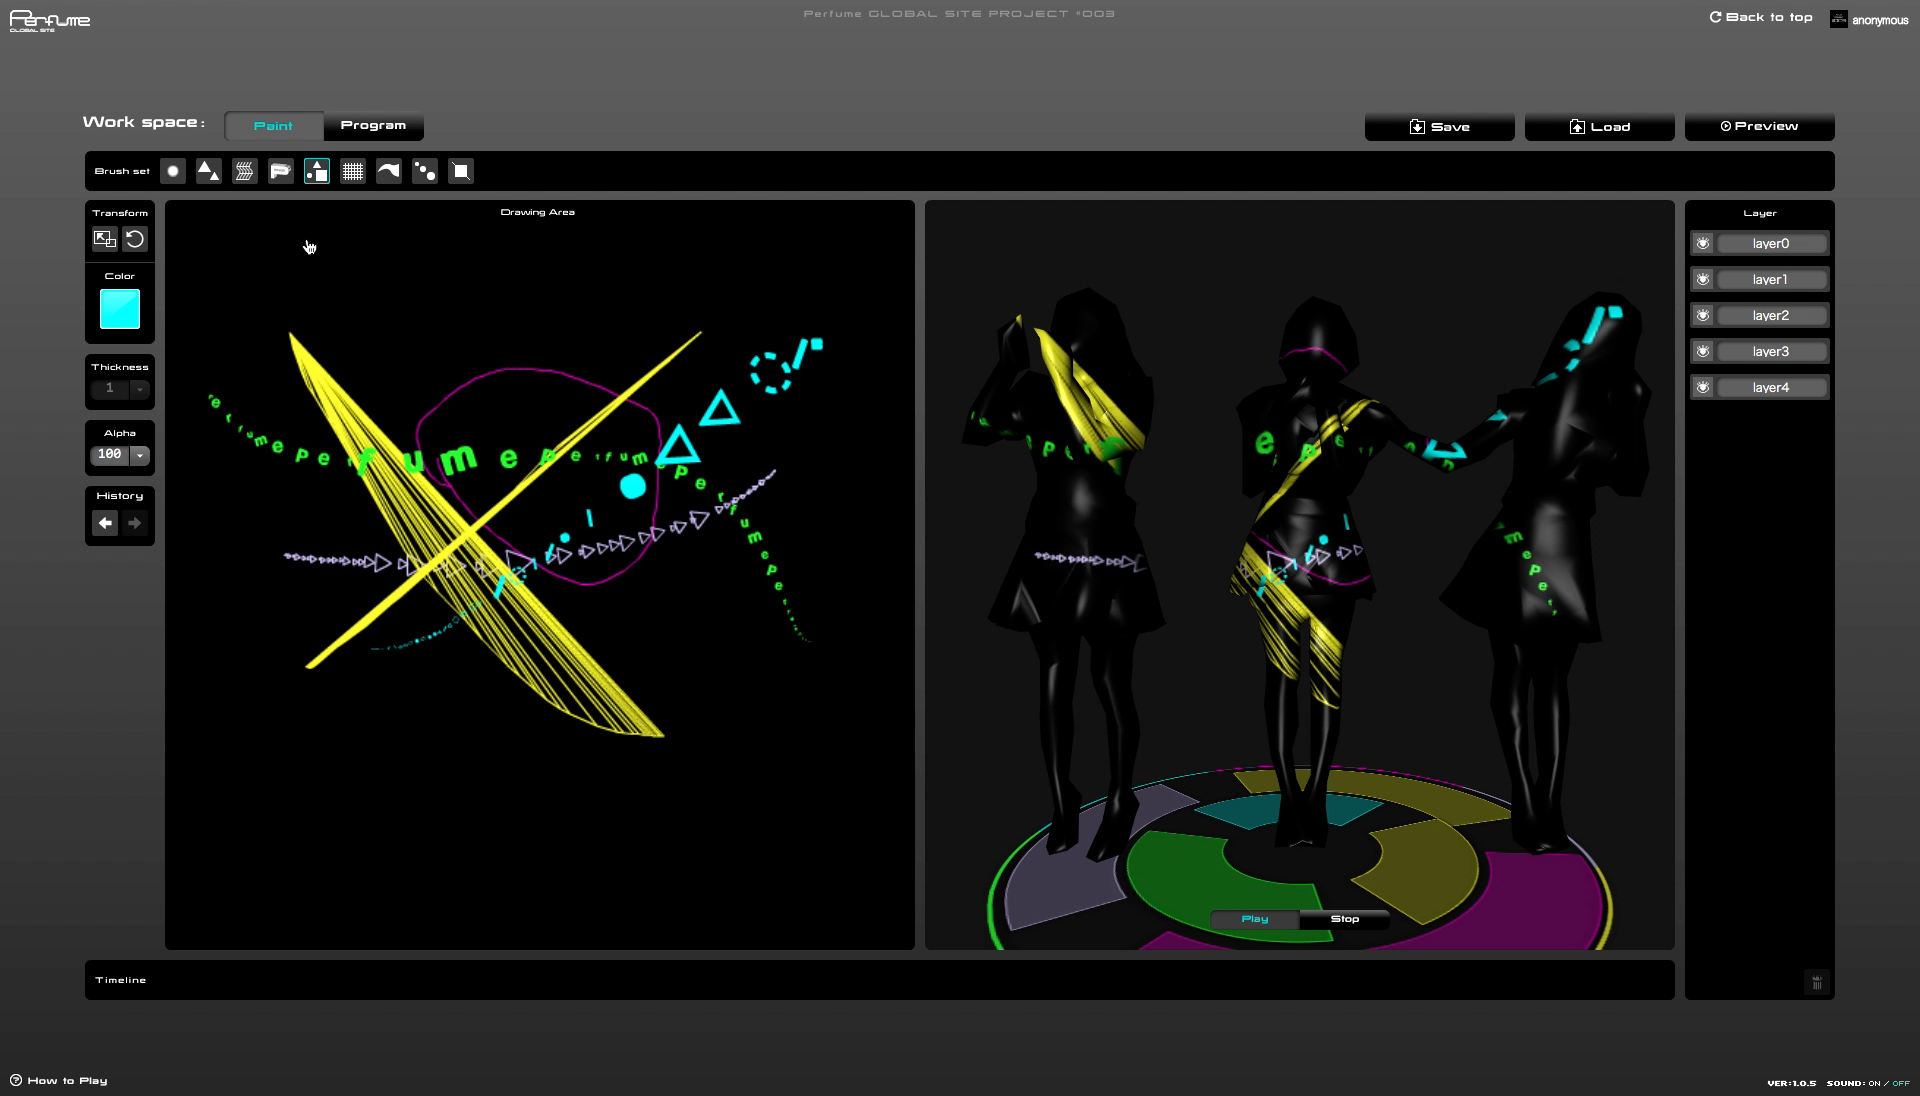 Perfume global site project #003